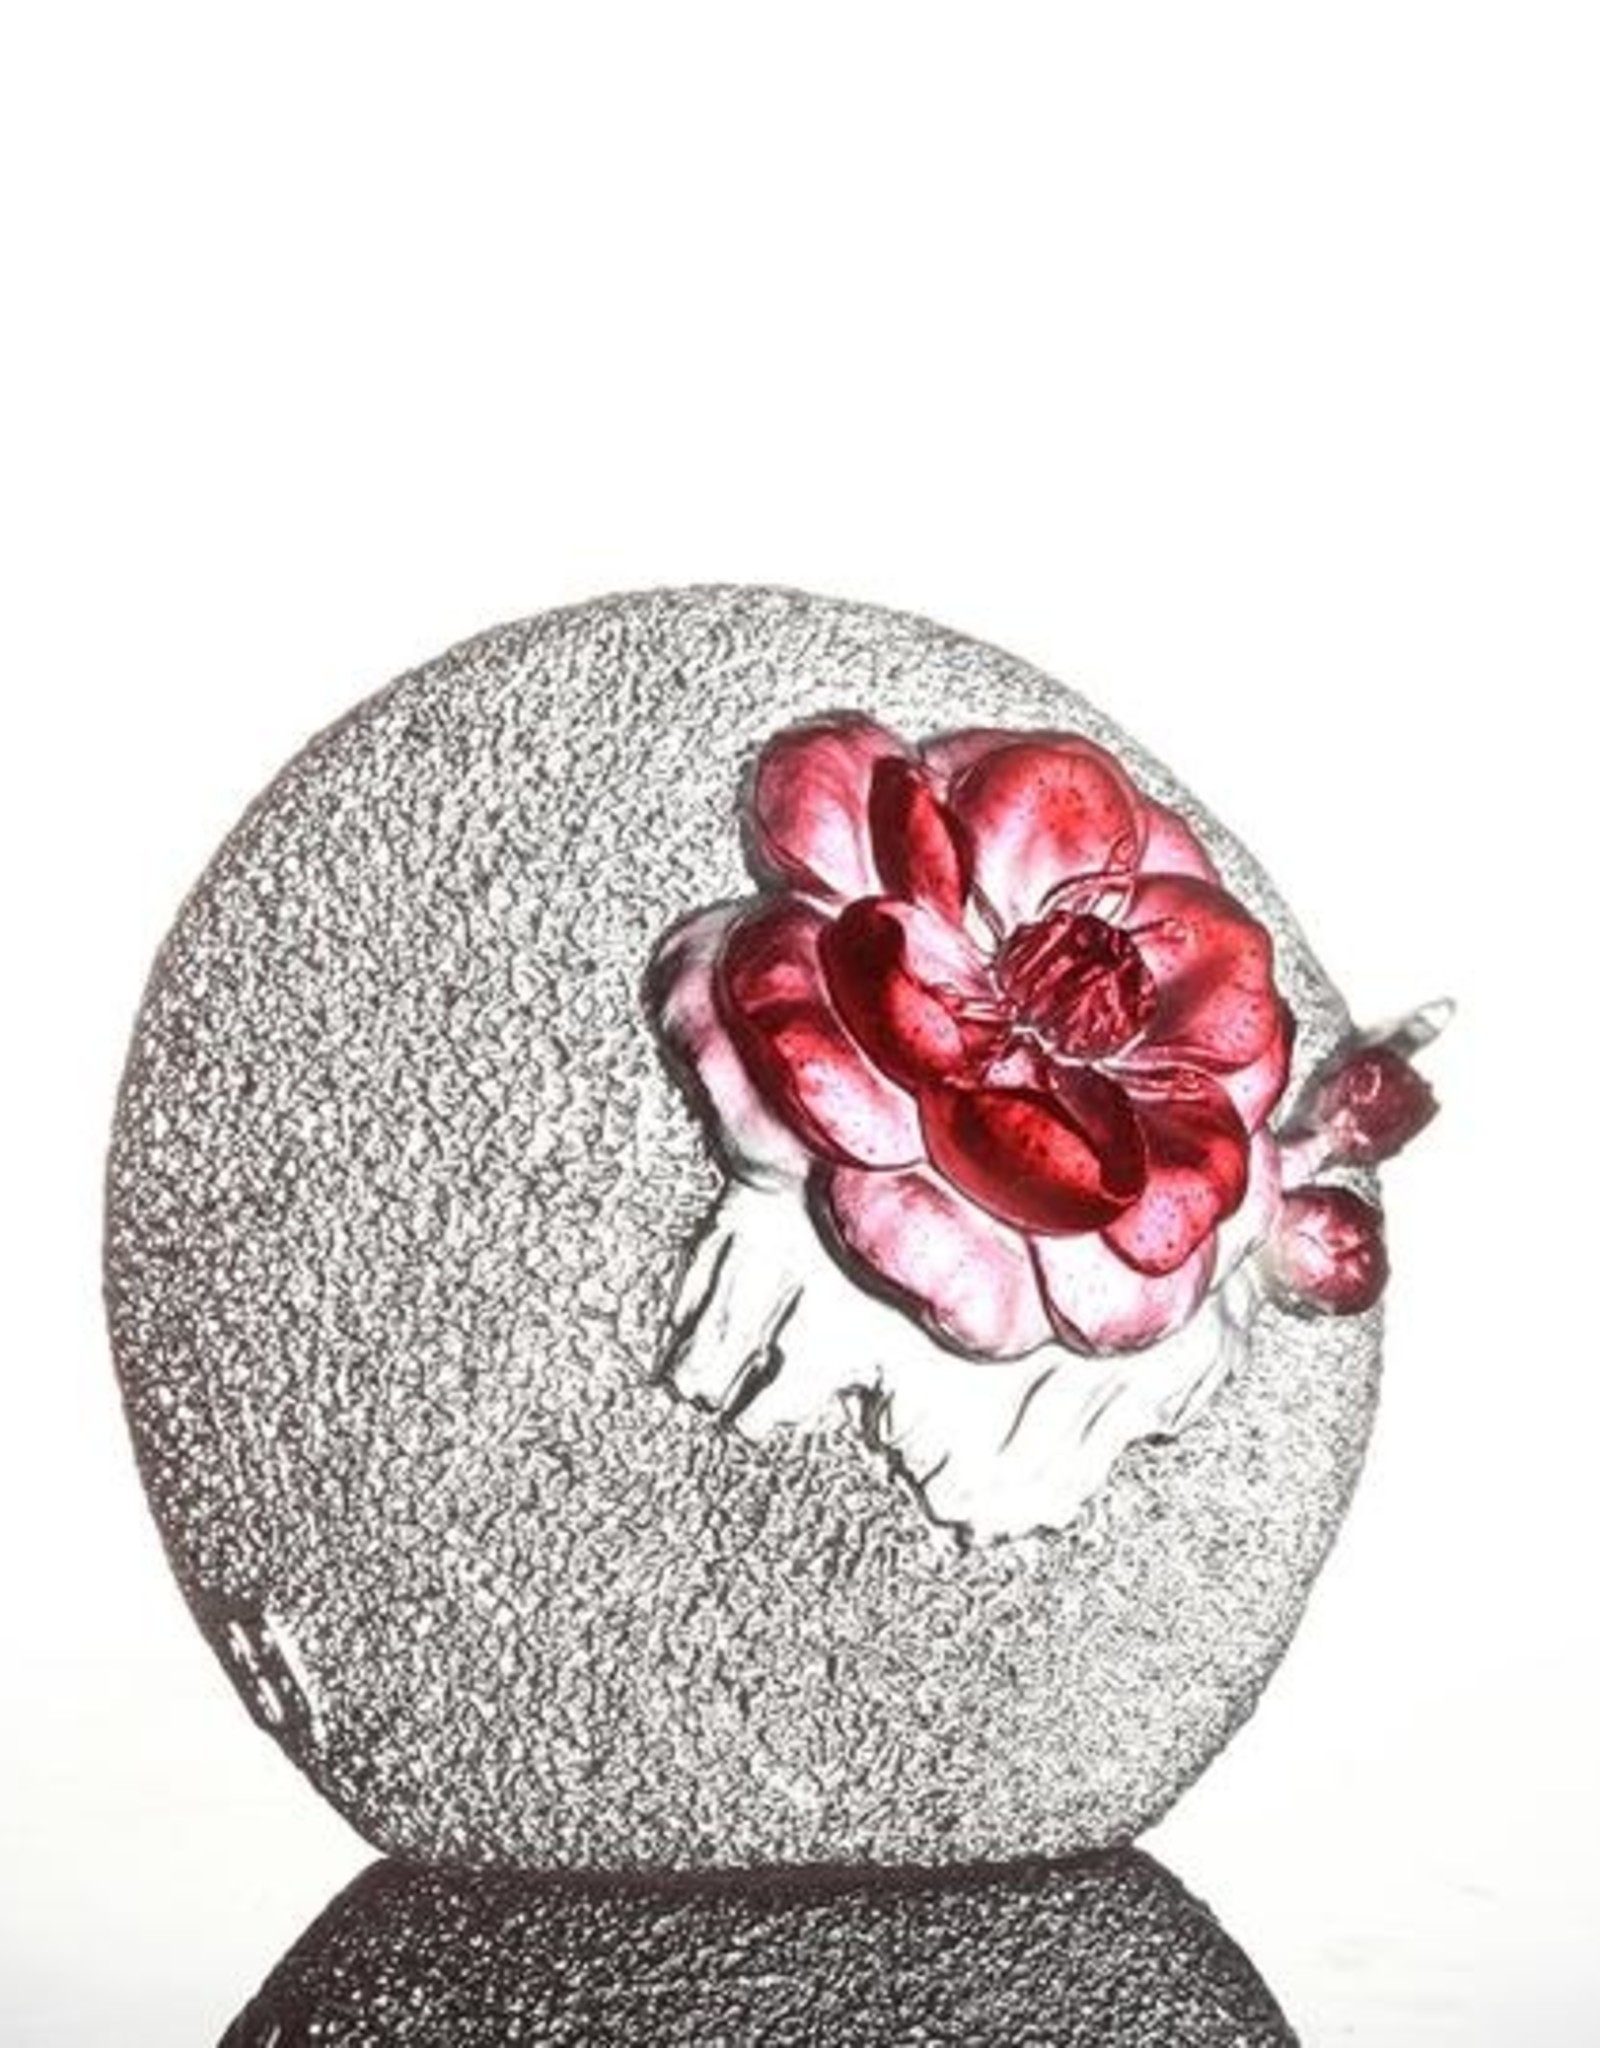 LIULI Crystal Art Crystal Plum Blossom, Burst of Spring, Gold Red Clear (Limited Edition)